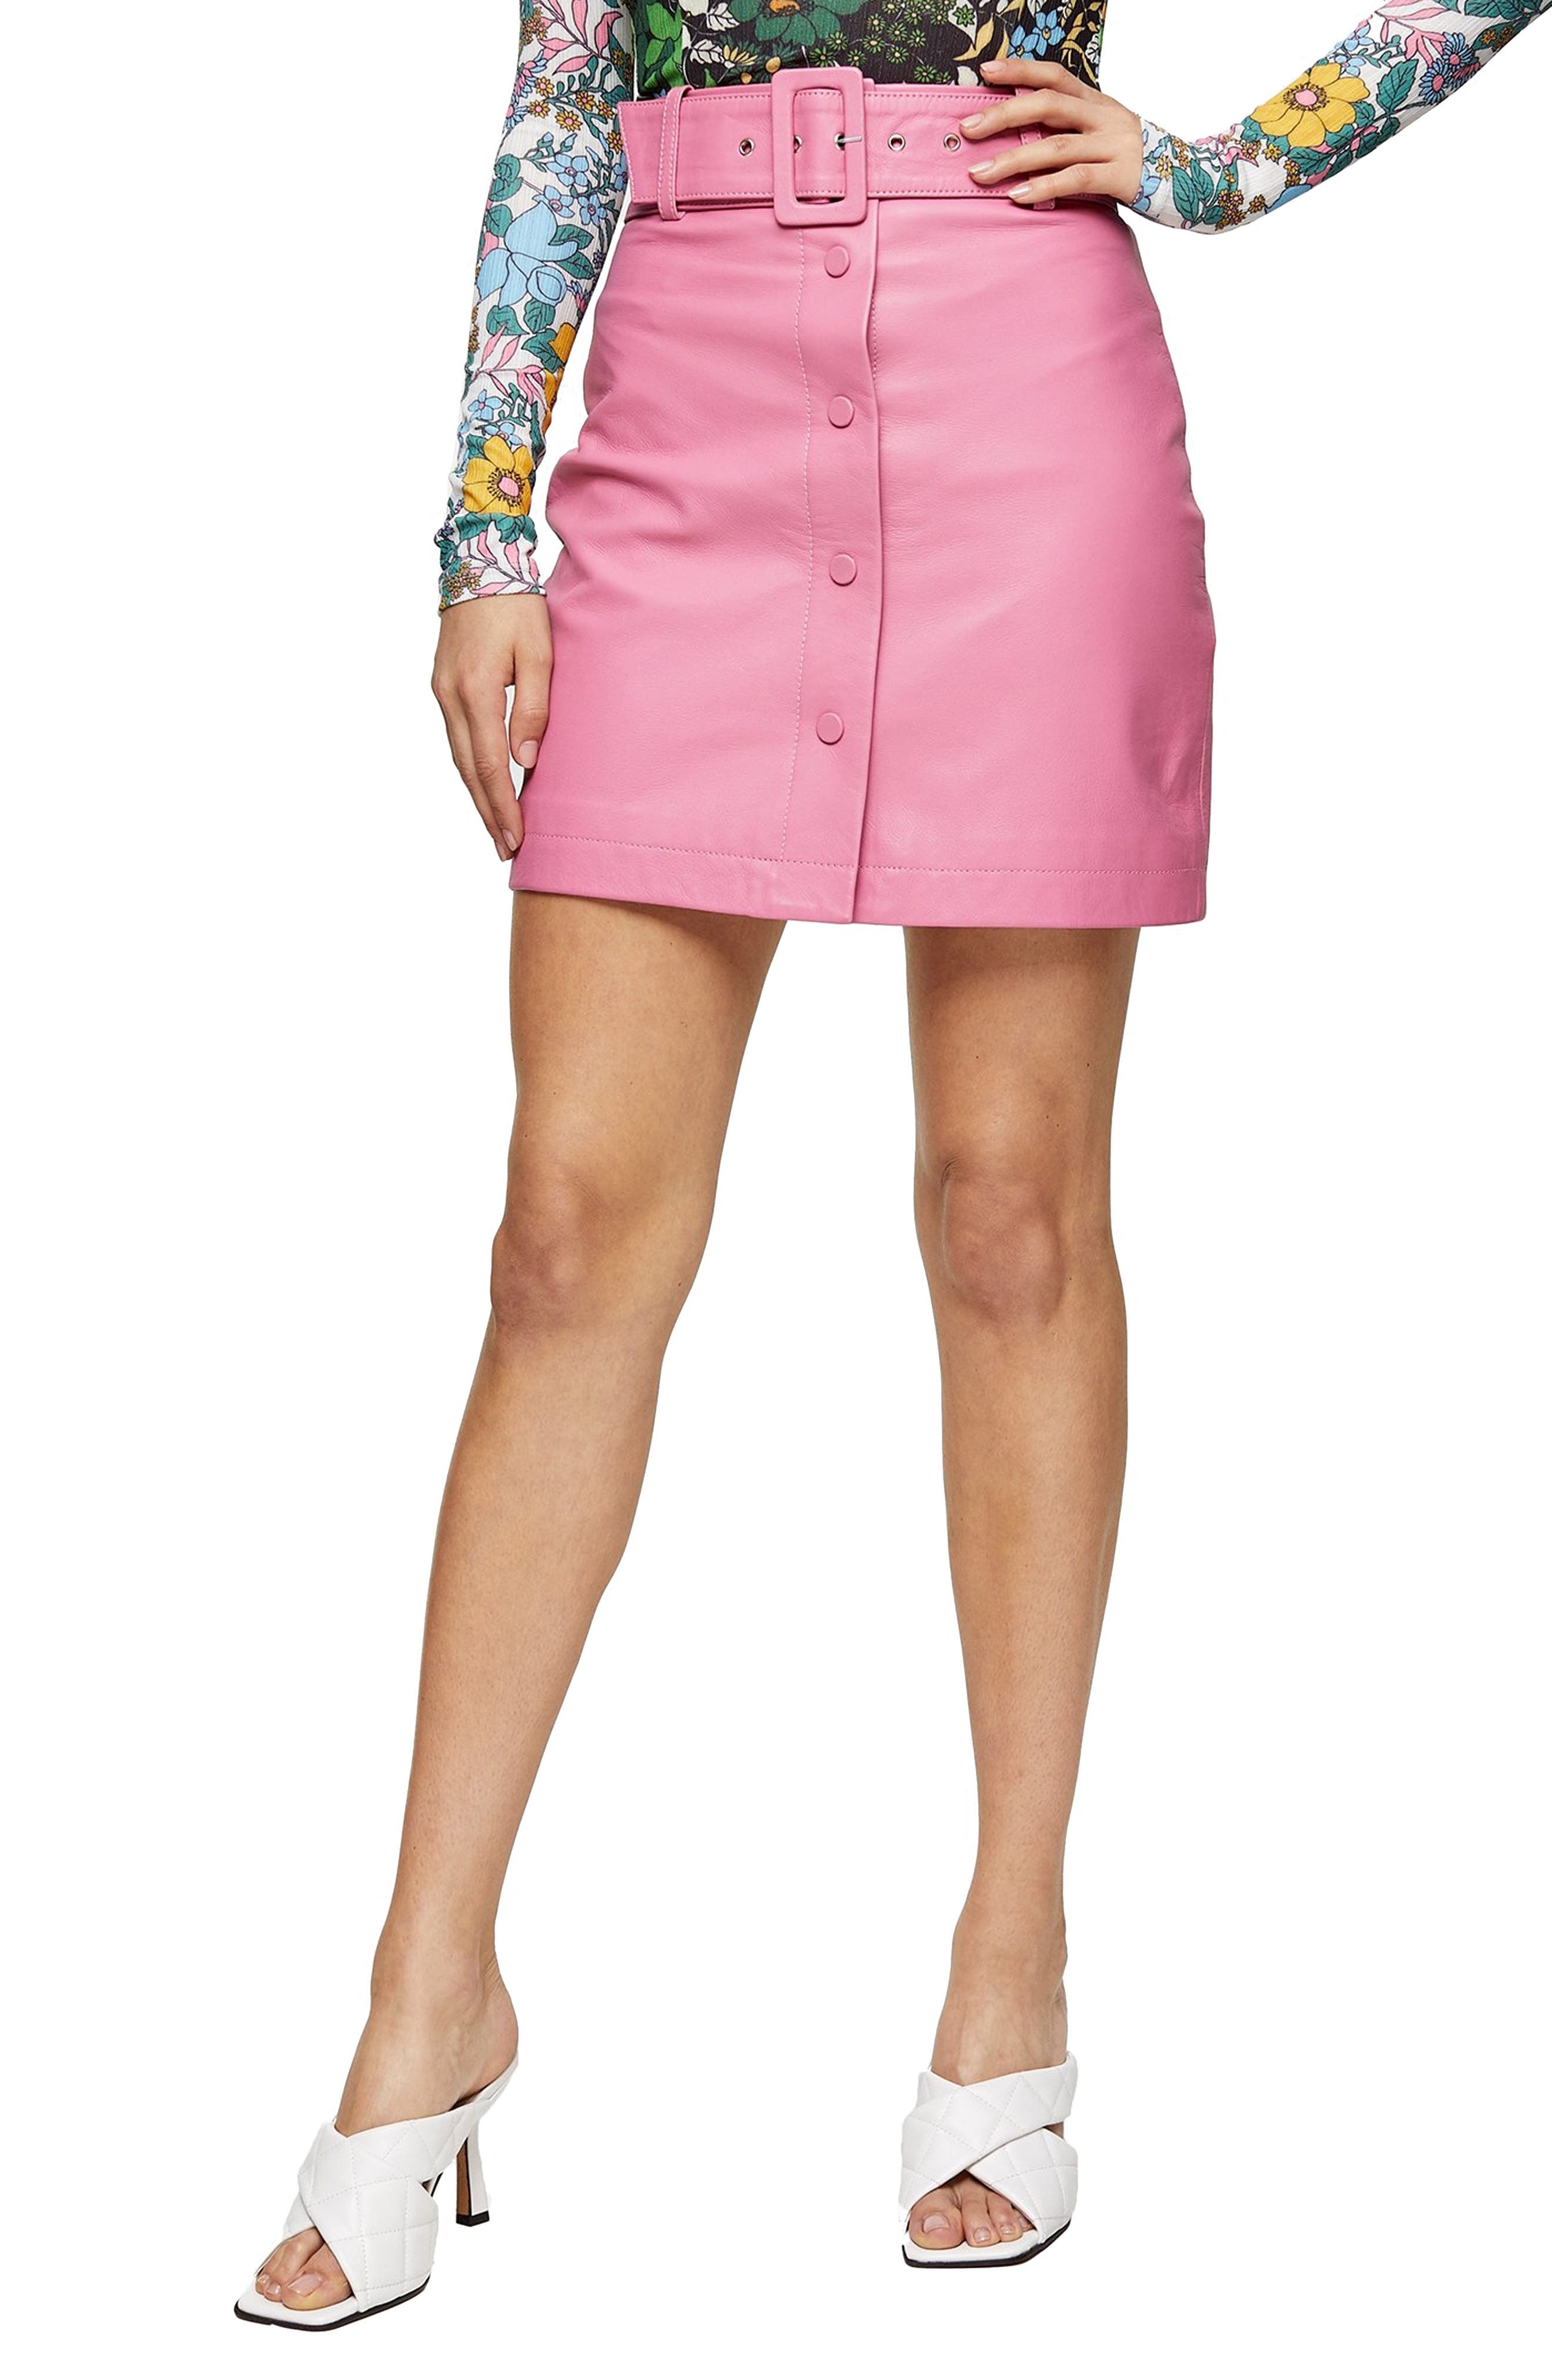 Sweeten your look in this pretty pink mini made from rich leather with a defining waist belt. Style Name: Topshop Belted Leather Miniskirt. Style Number: 6080802. Available in stores.